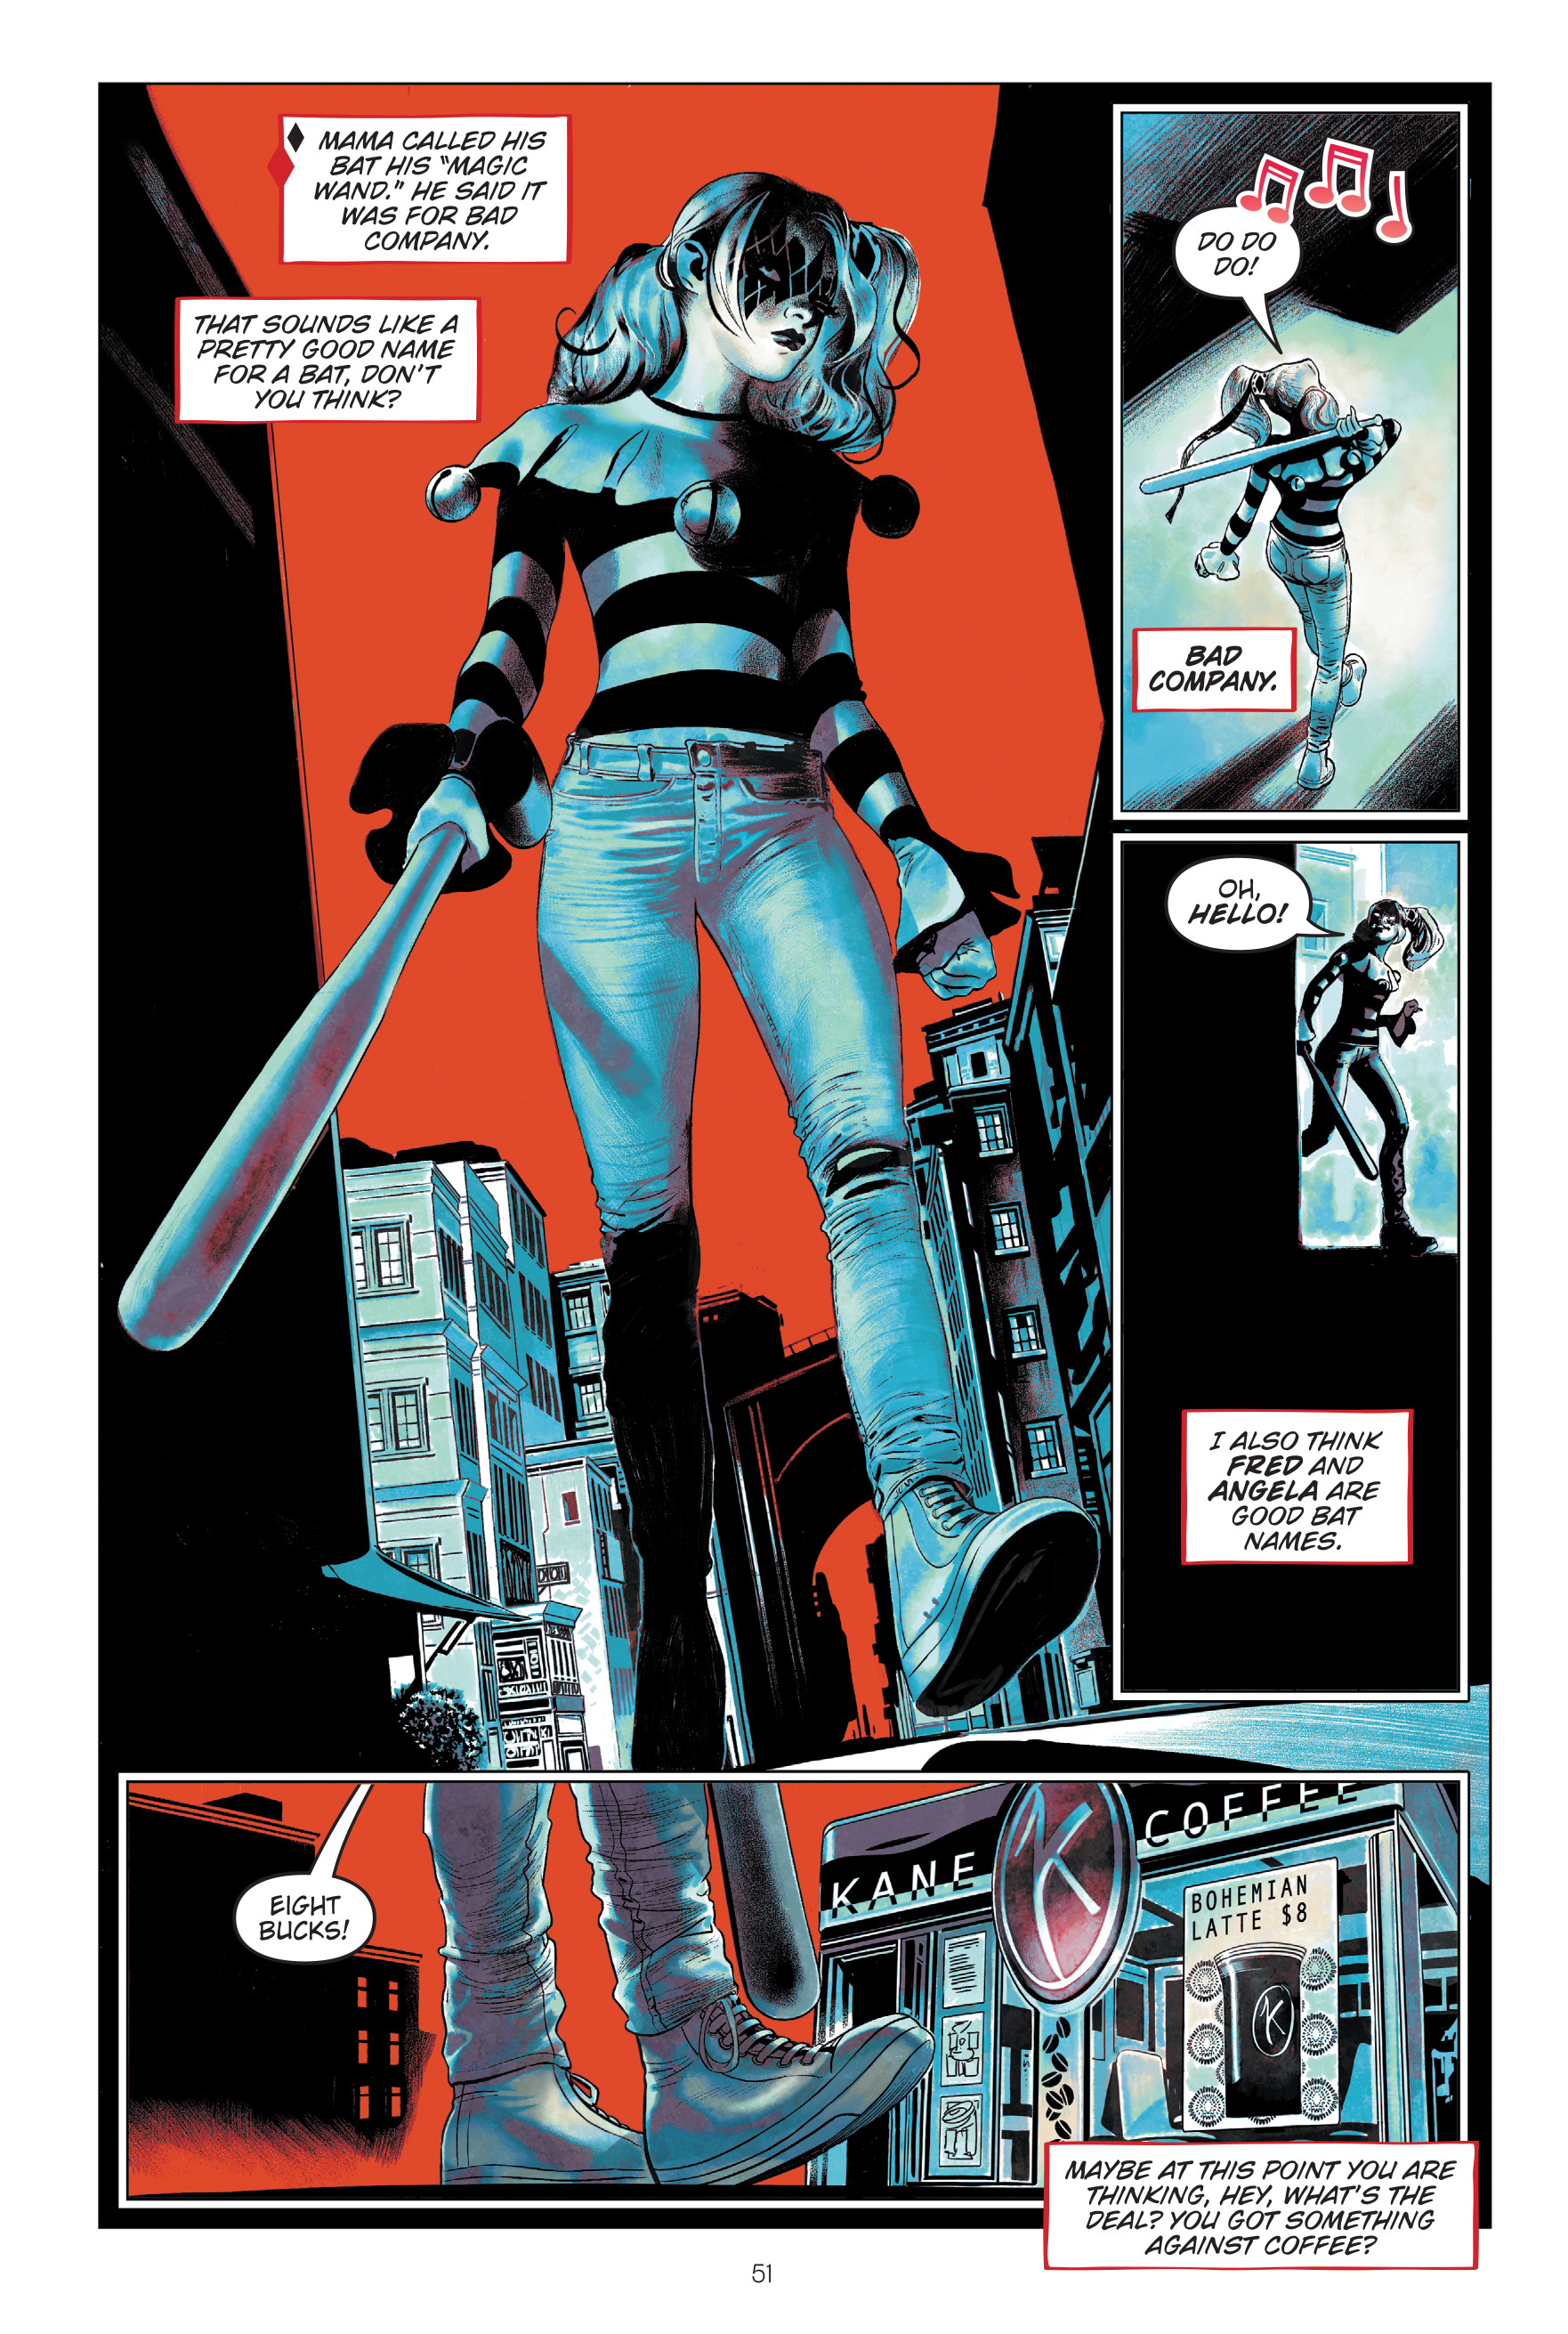 Harley Quinn: Breaking Glass Page 51, DC 2019.